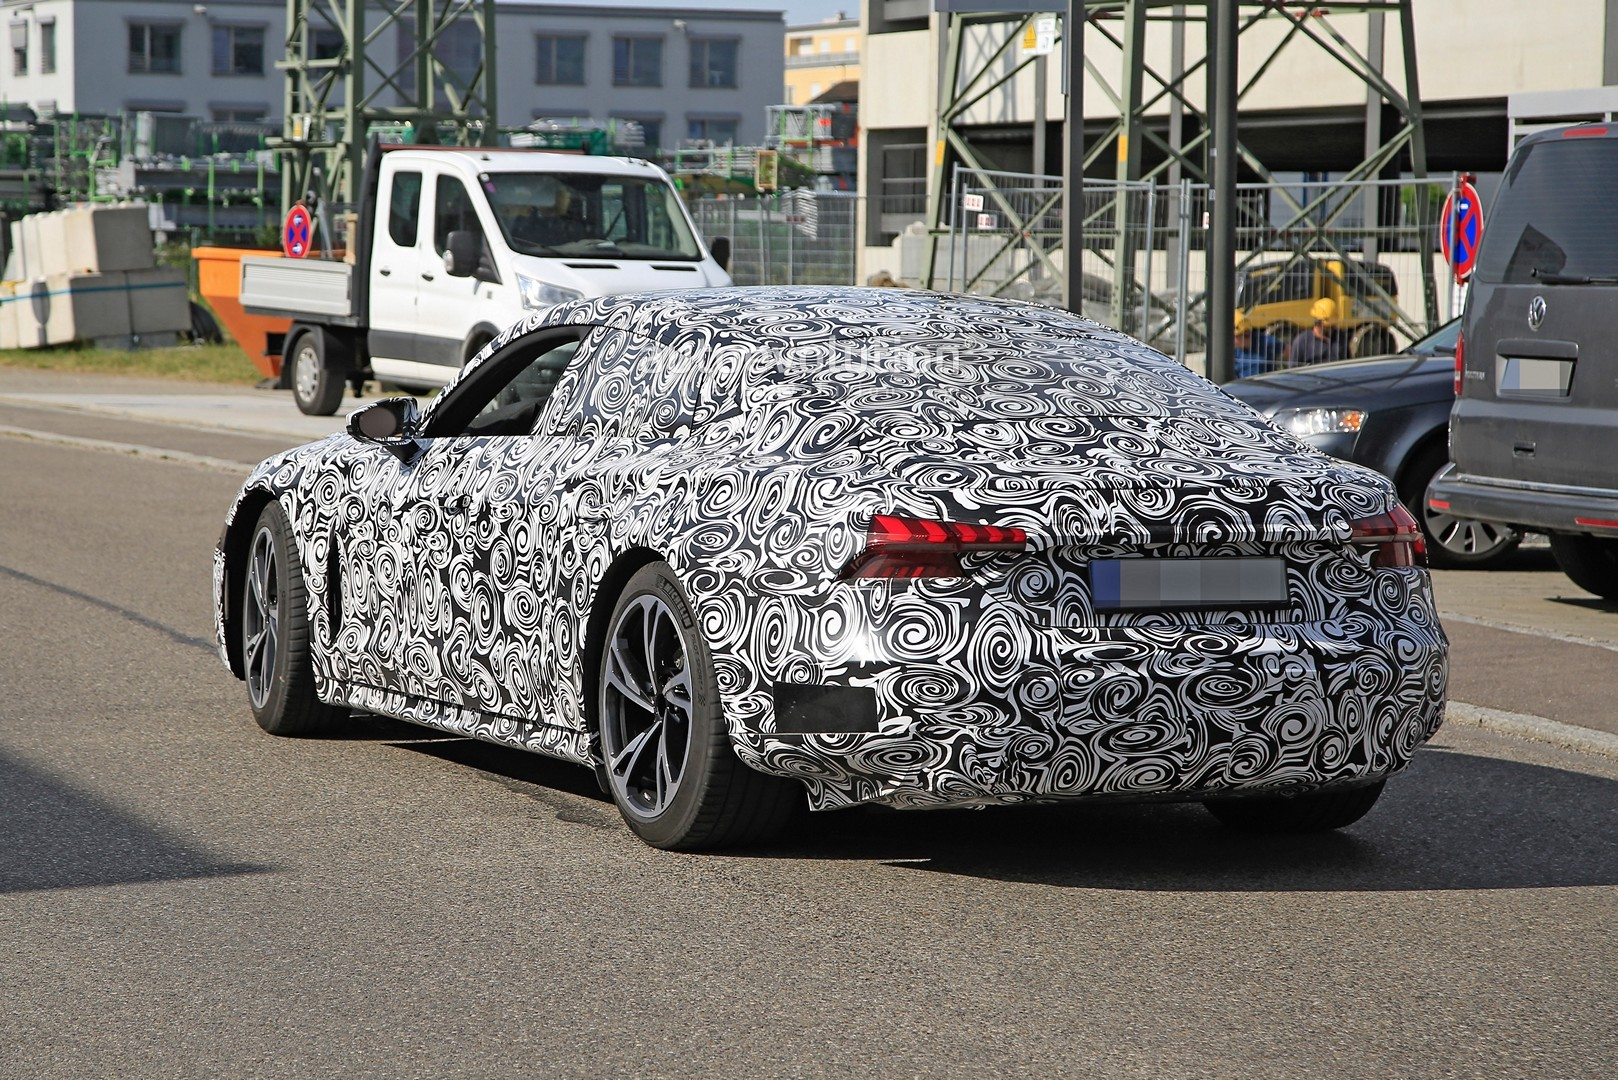 2021-audi-​e-tron-gt-​spotted-10​0000-ev-ge​tting-read​y-for-prod​uction_9